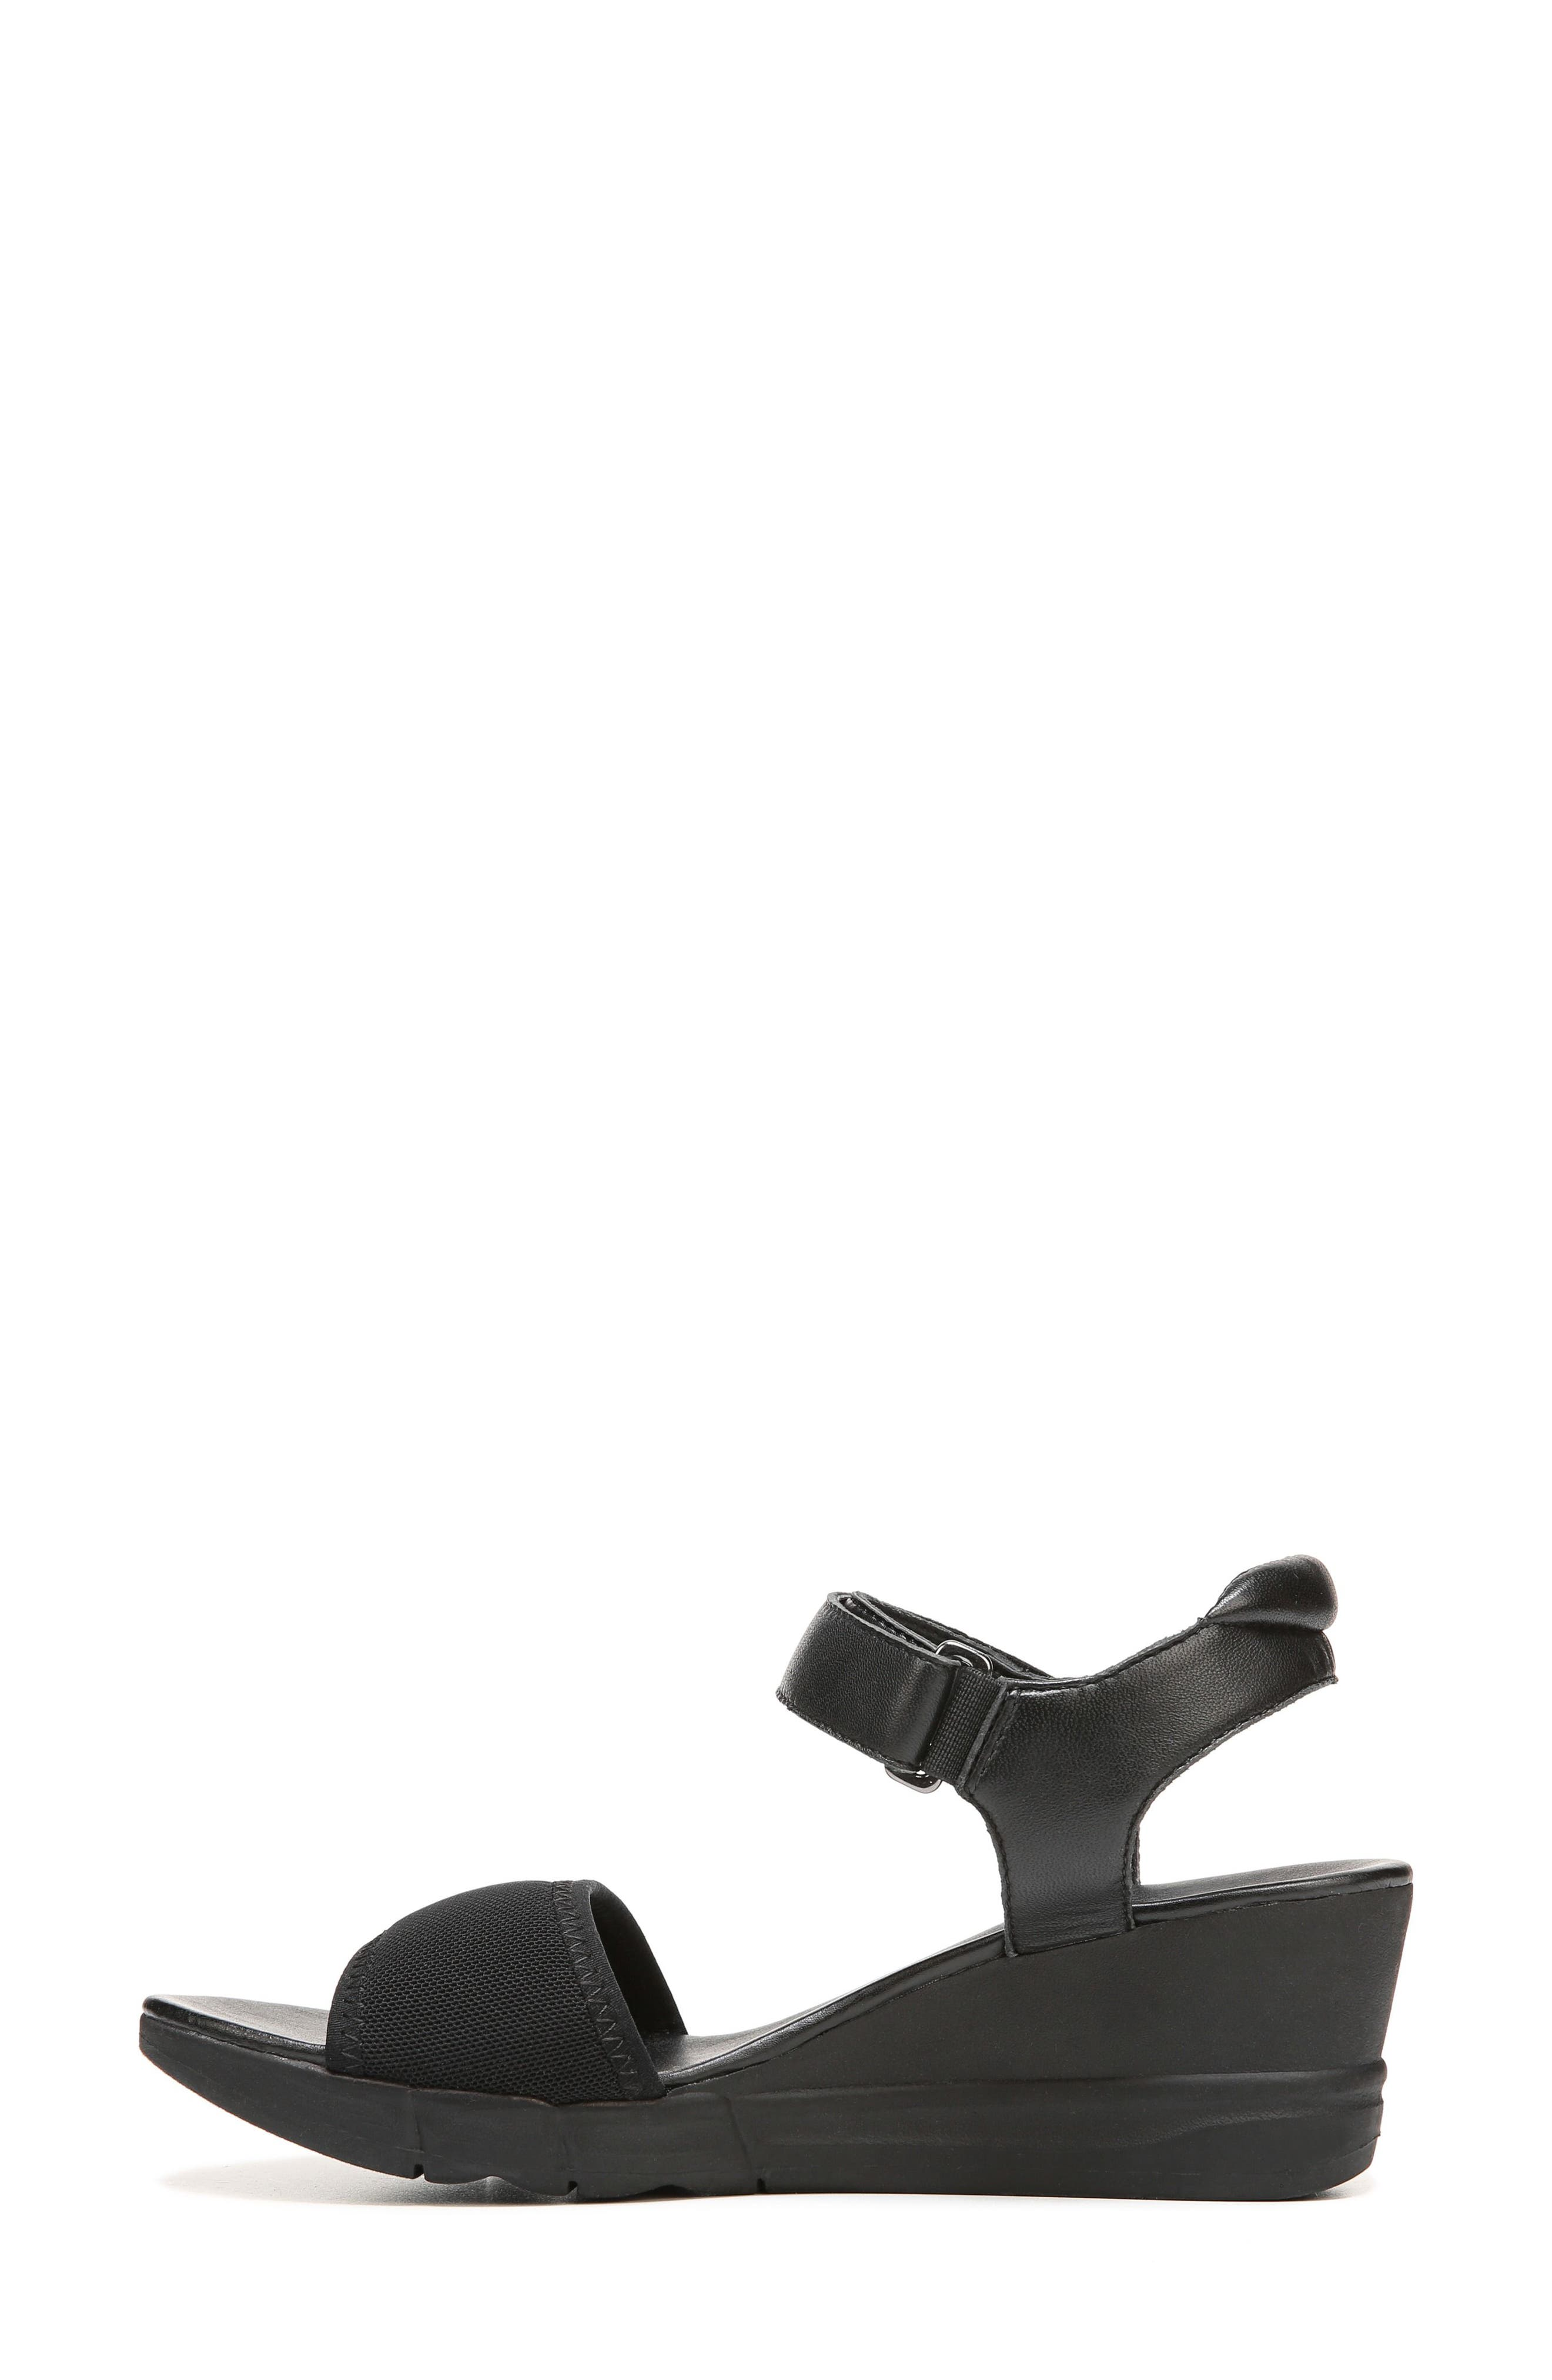 Irena Wedge Sandal,                             Alternate thumbnail 4, color,                             Black Leather